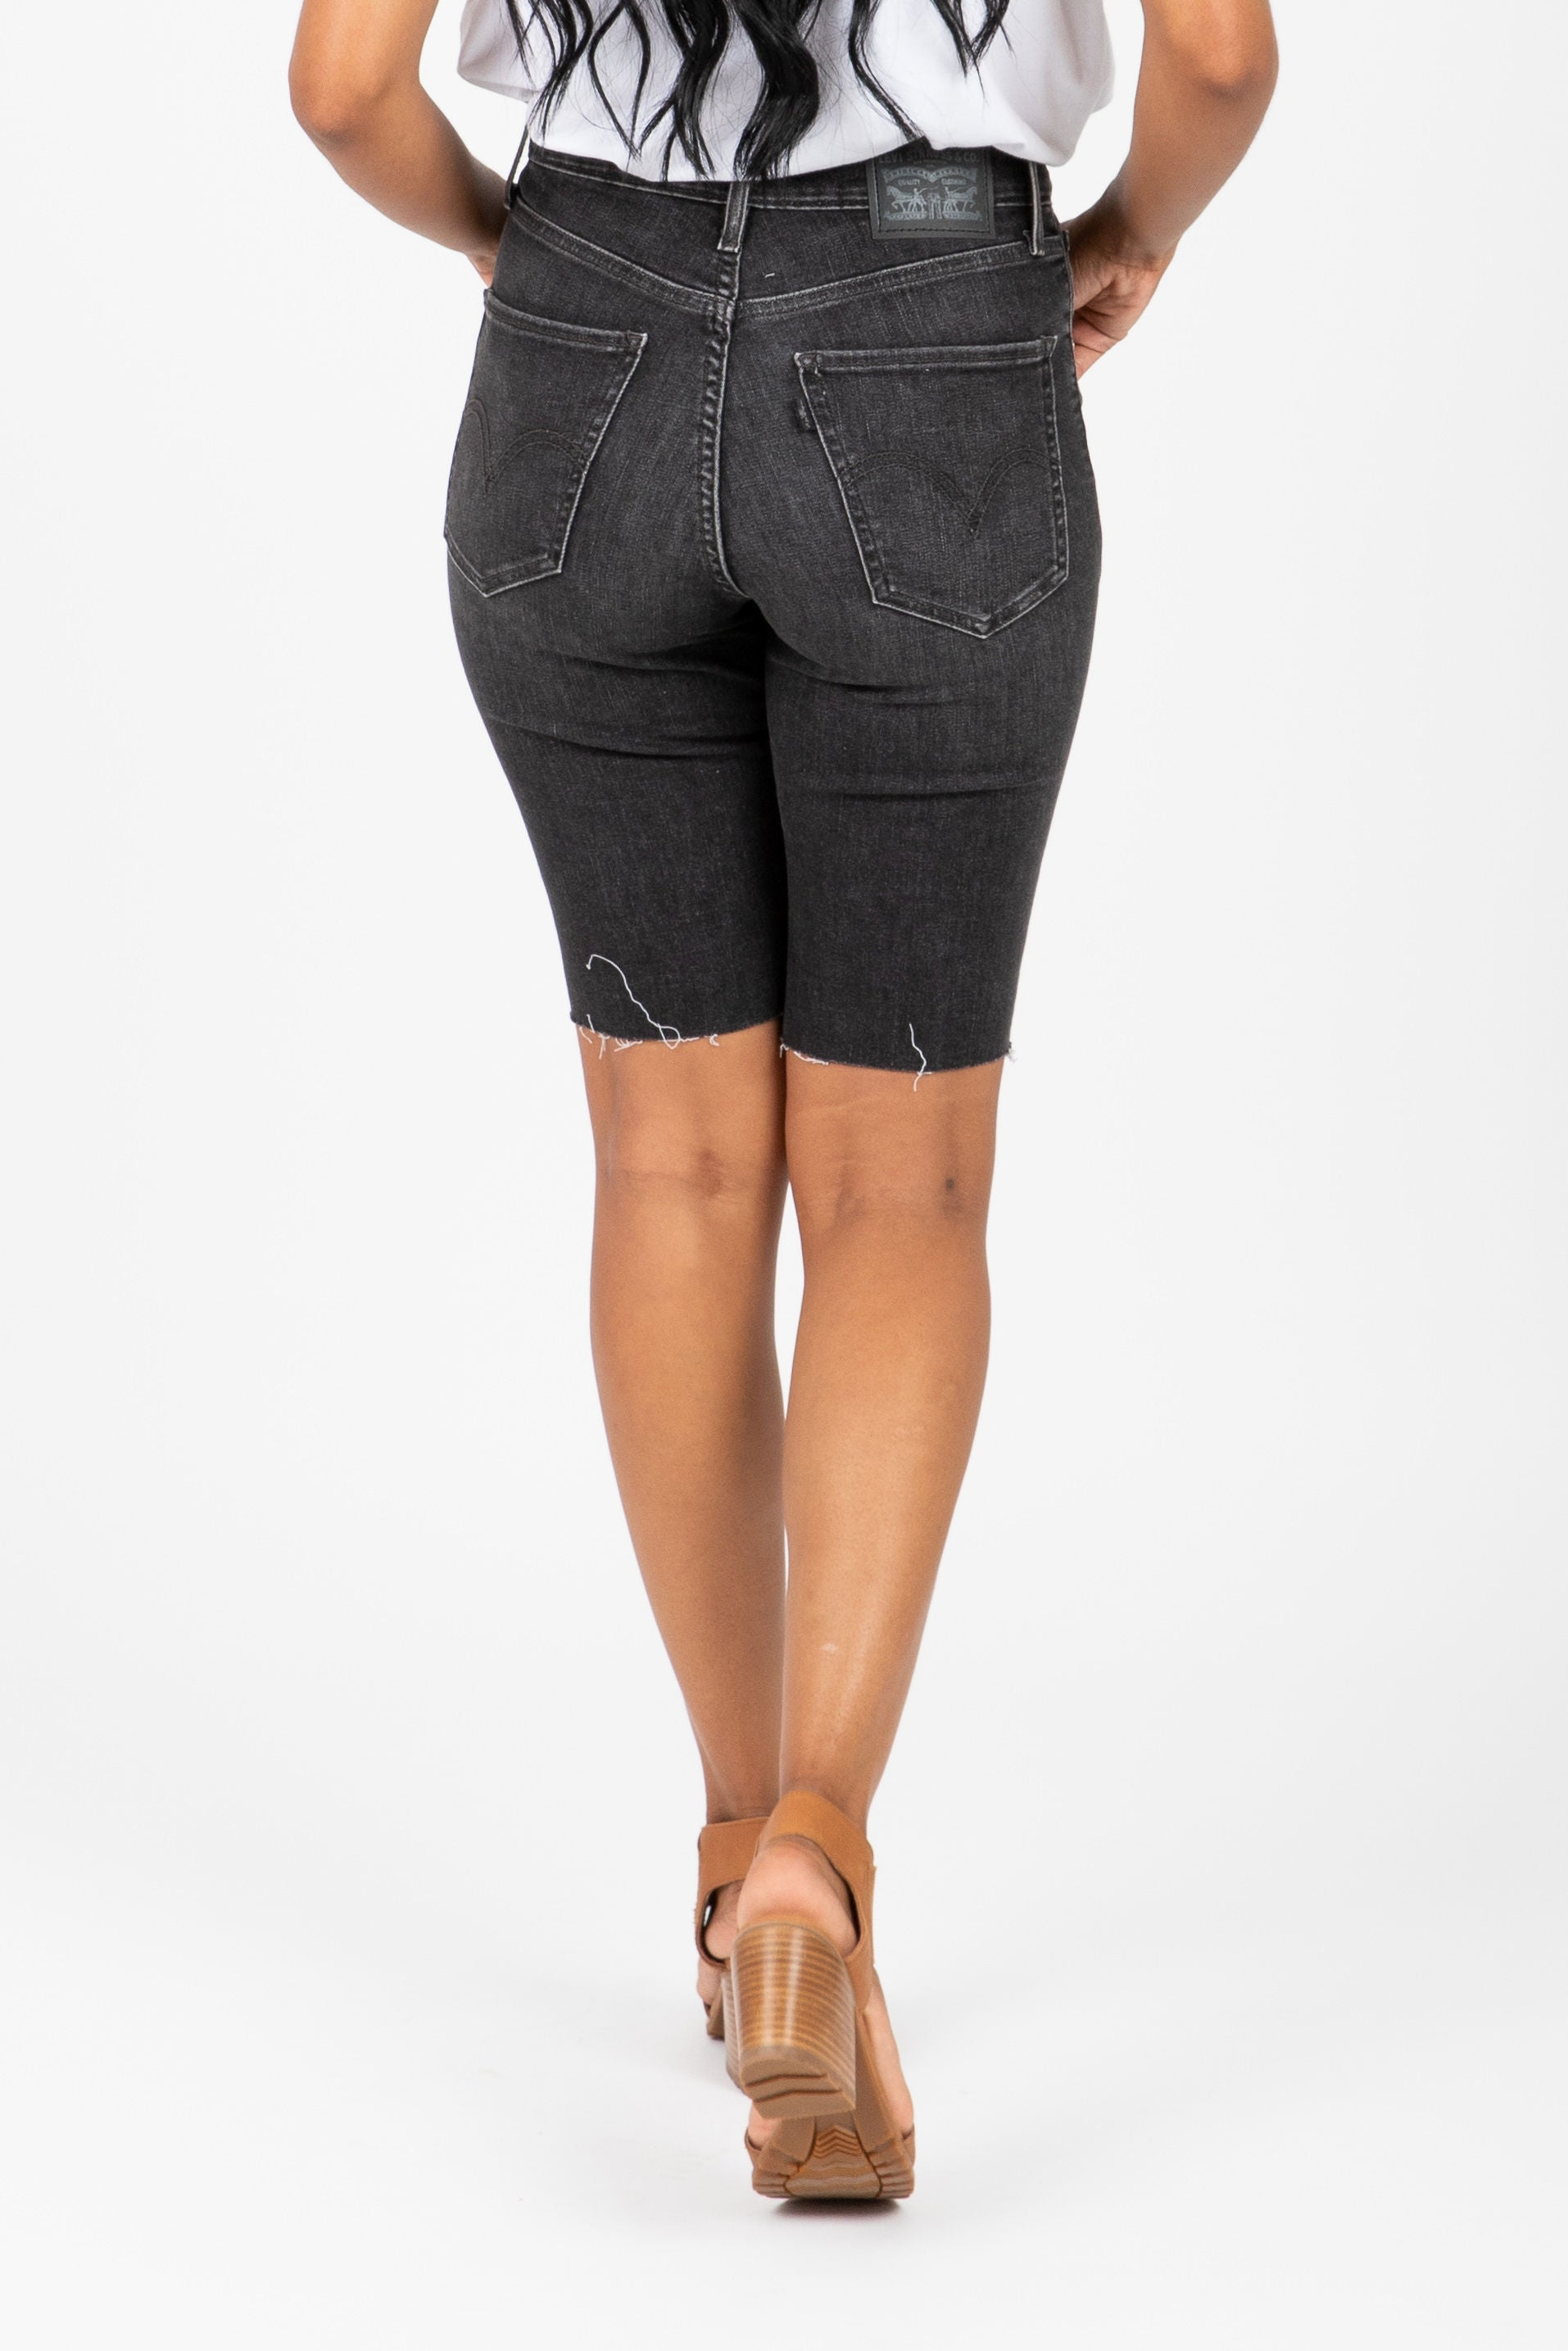 Levi's: Mile High Bike Shorts in No Can Do